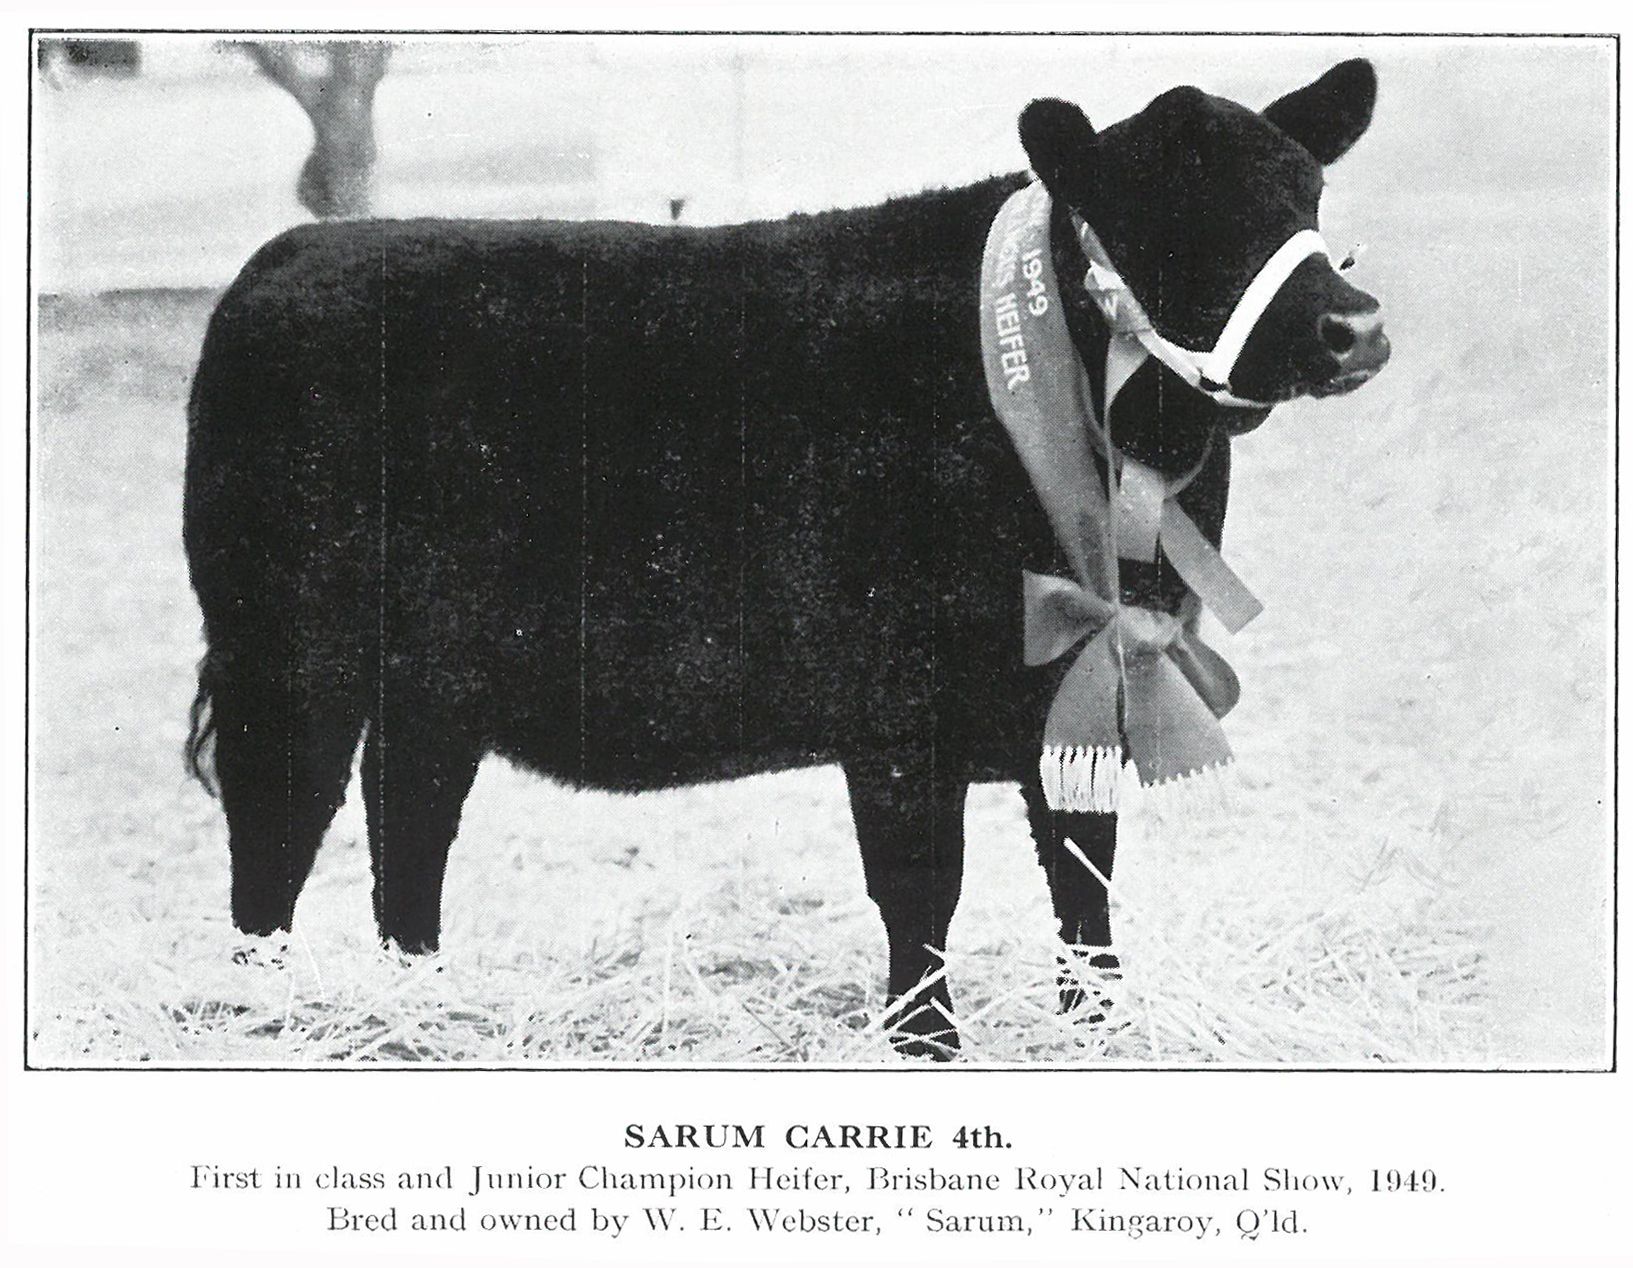 Sarum Carrie 4th